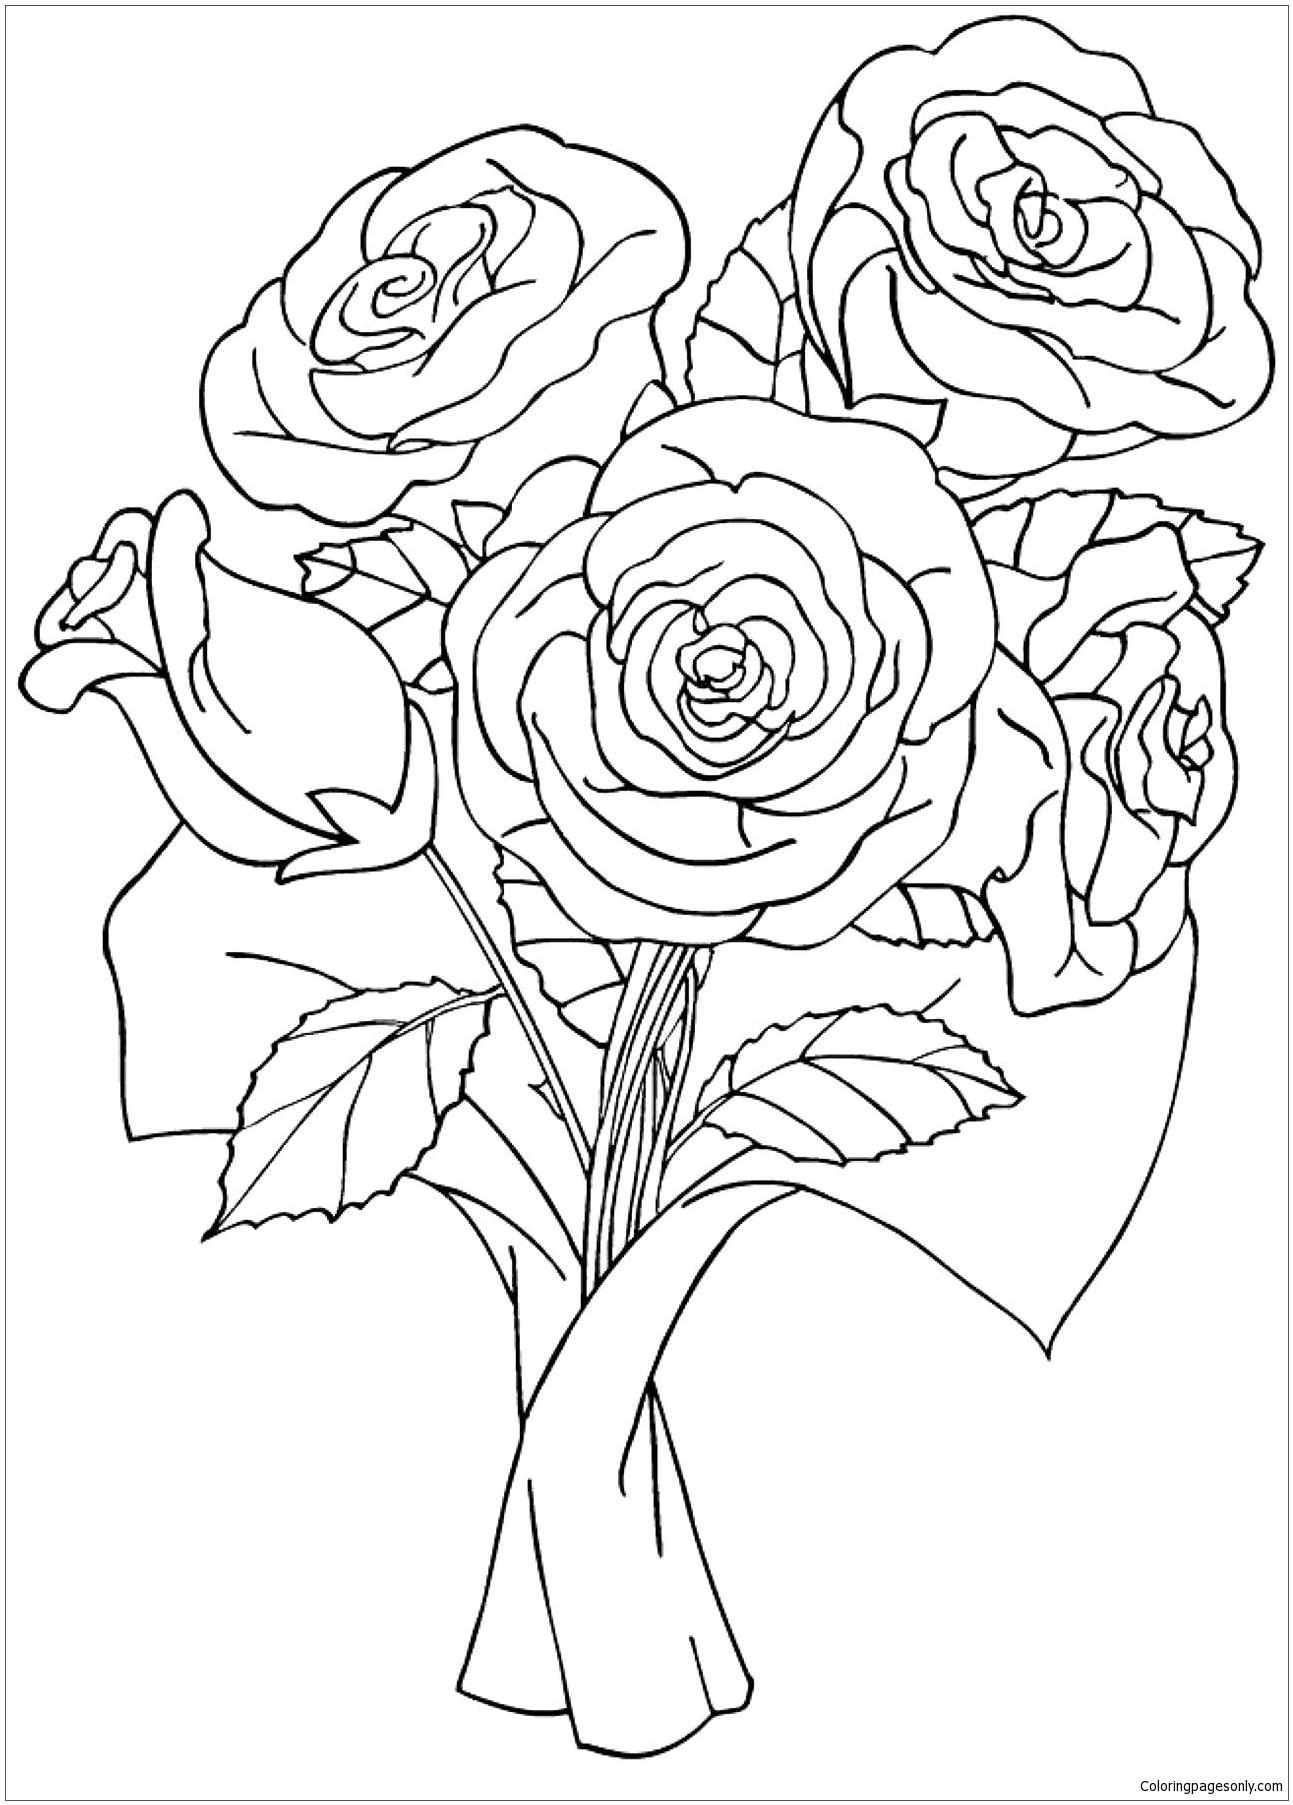 rose for coloring roses flower coloring page free coloring pages online for coloring rose